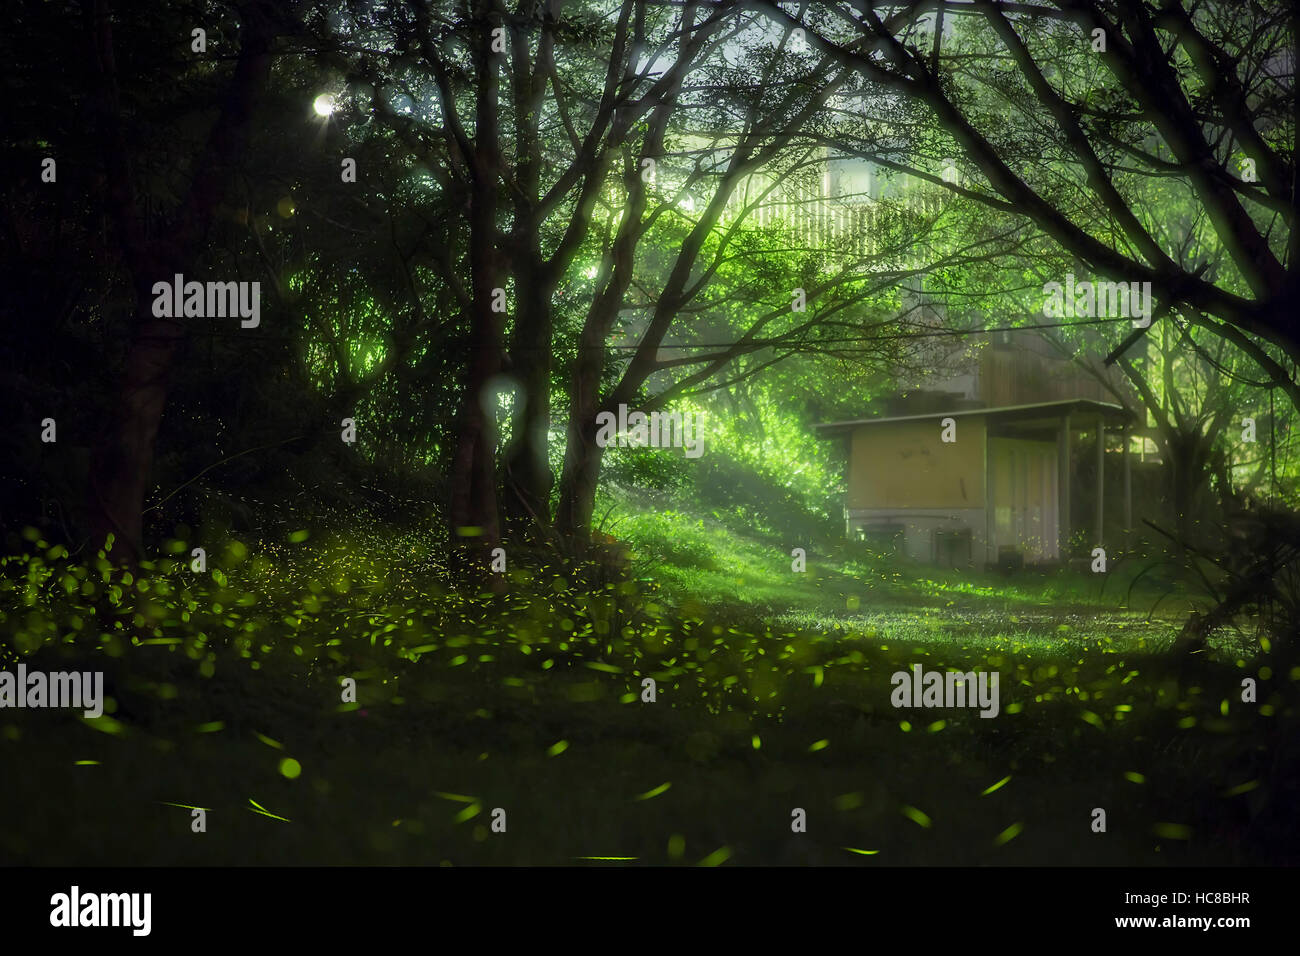 Dreamy Fireflies and a house, photo taken at Taipei, Taiwan - Stock Image